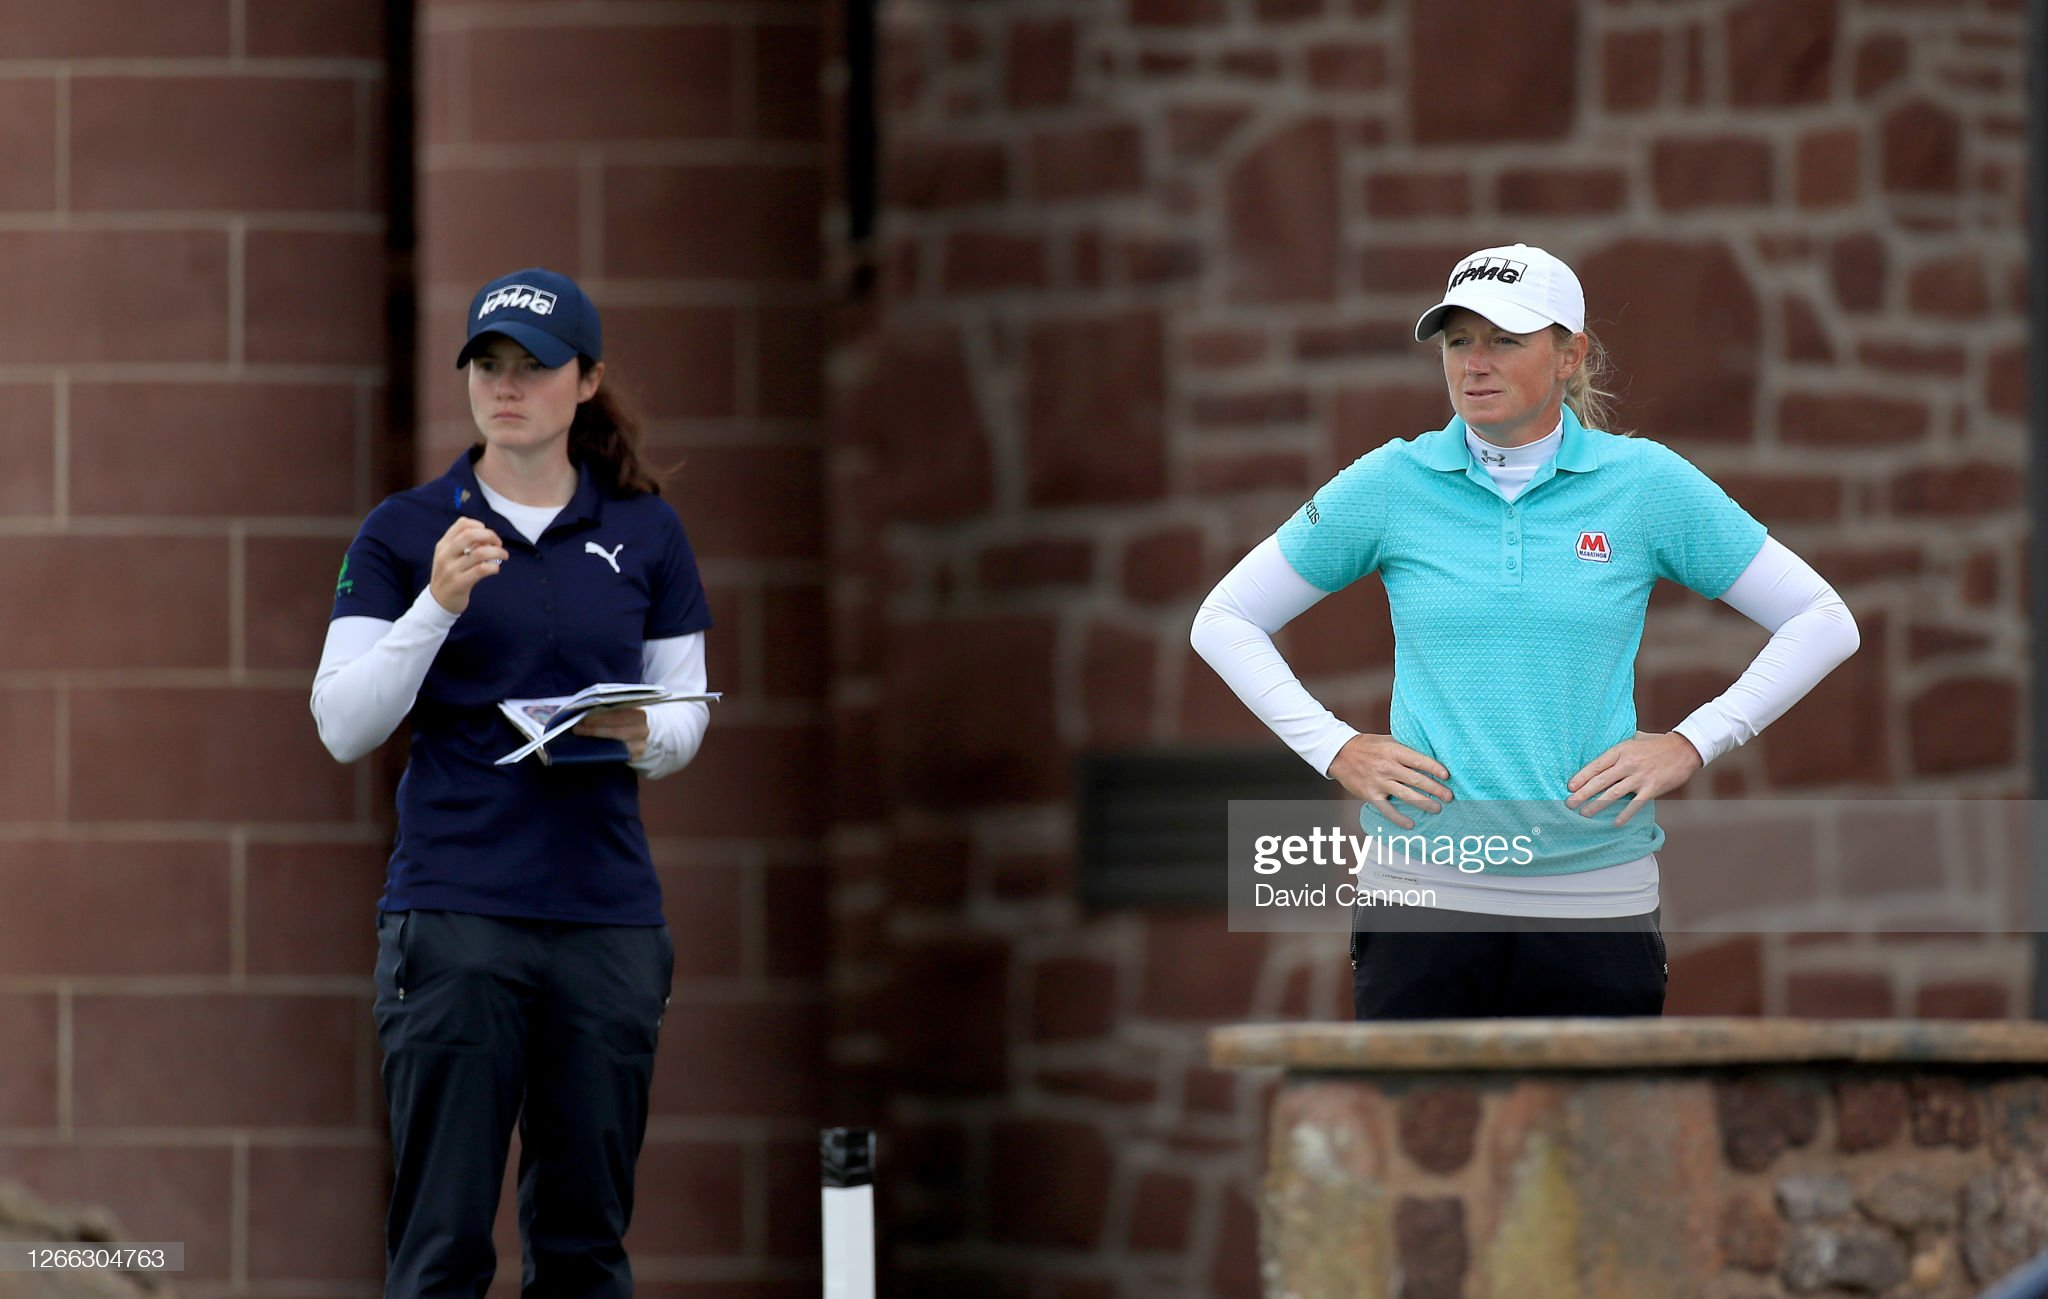 https://media.gettyimages.com/photos/stacy-lewis-of-the-united-states-waits-with-leona-maguire-of-ireland-picture-id1266304763?s=2048x2048